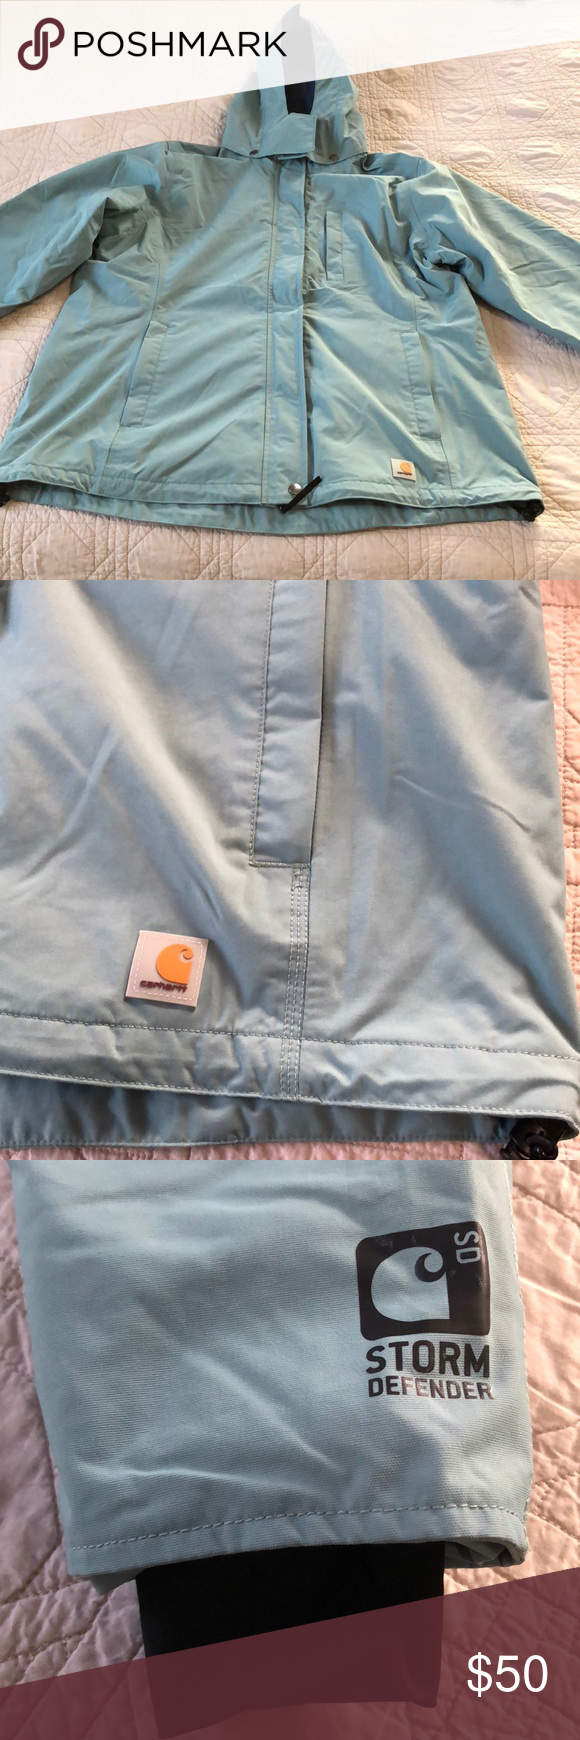 Carhartt Women's Cascade Jacket mesh lined size XL Carhartt Women's Cascade Jacket mesh lined   Size XL Excellent condition  Mesh lined Detachable hood Carhartt Jackets & Coats Utility Jackets #carharttwomen Carhartt Women's Cascade Jacket mesh lined size XL Carhartt Women's Cascade Jacket mesh lined   Size XL Excellent condition  Mesh lined Detachable hood Carhartt Jackets & Coats Utility Jackets #carharttwomen